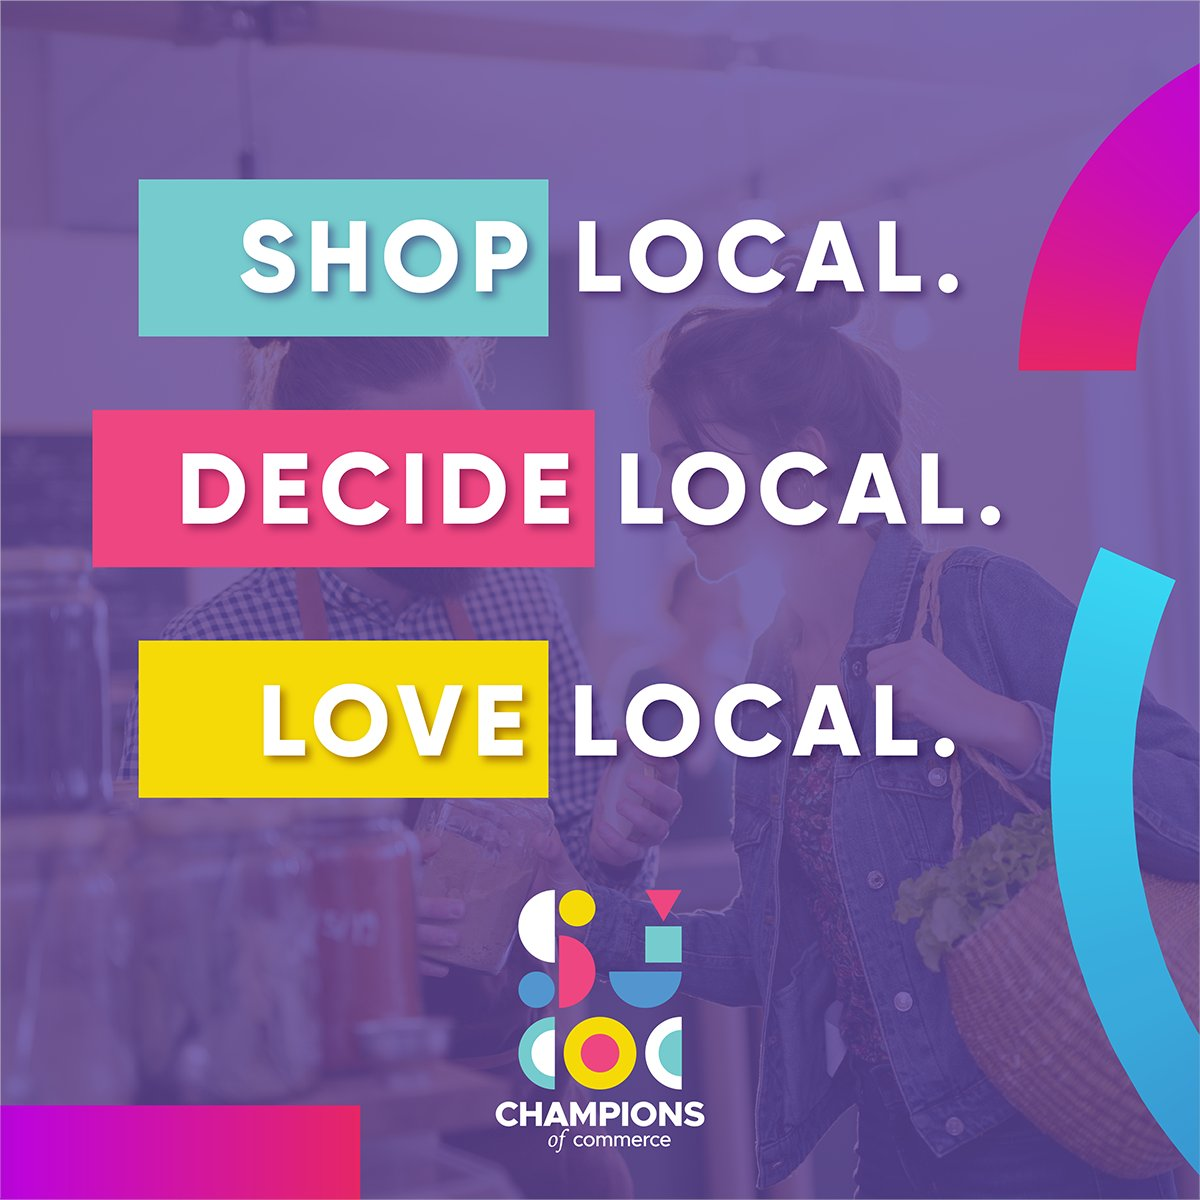 Share if you're a Champion of Commerce and support local businesses. #ShopLocal #DecideLocal #LoveLocal #sjchamber #ChampionsofCommerce